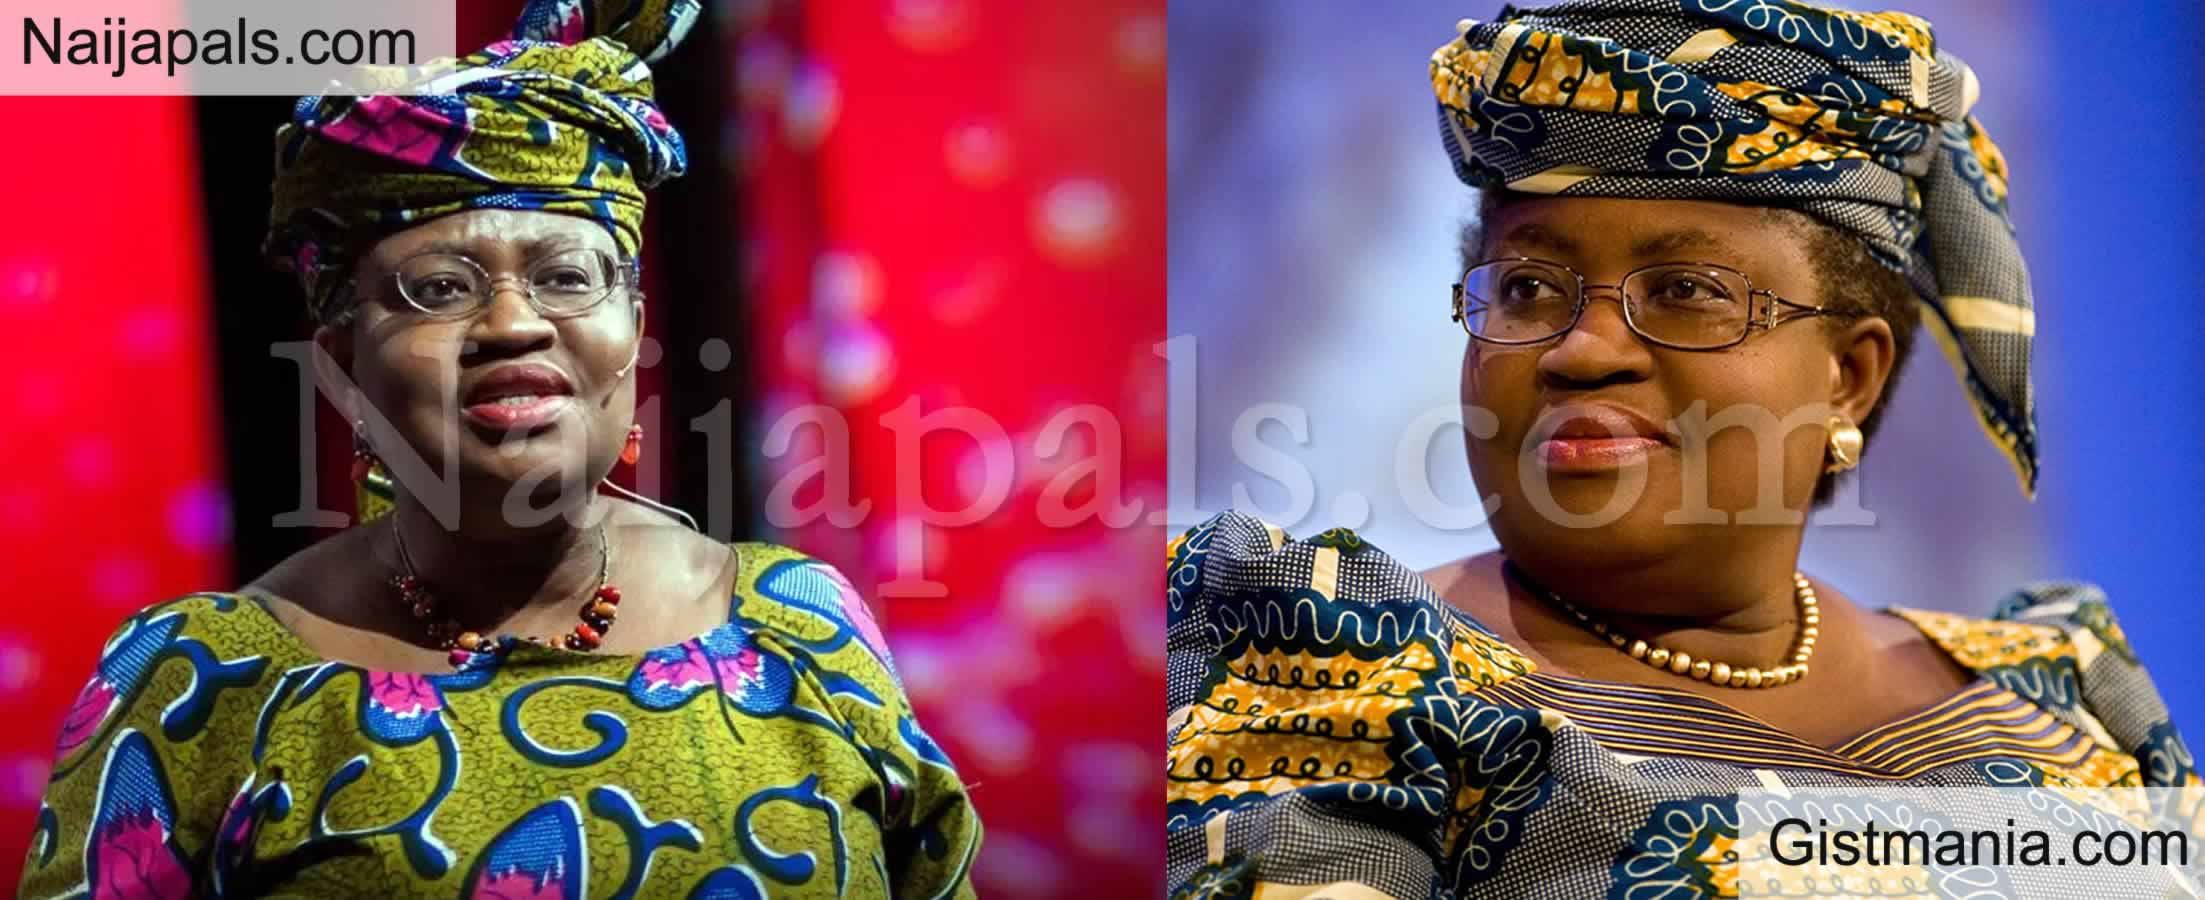 <img alt='.' class='lazyload' data-src='https://img.gistmania.com/emot/thumbs_up.gif' /> BREAKING NEWS! <b>Nigeria's Okonjo-Iweala Officially Emerges As First Female DG of World Trade Organization</b>